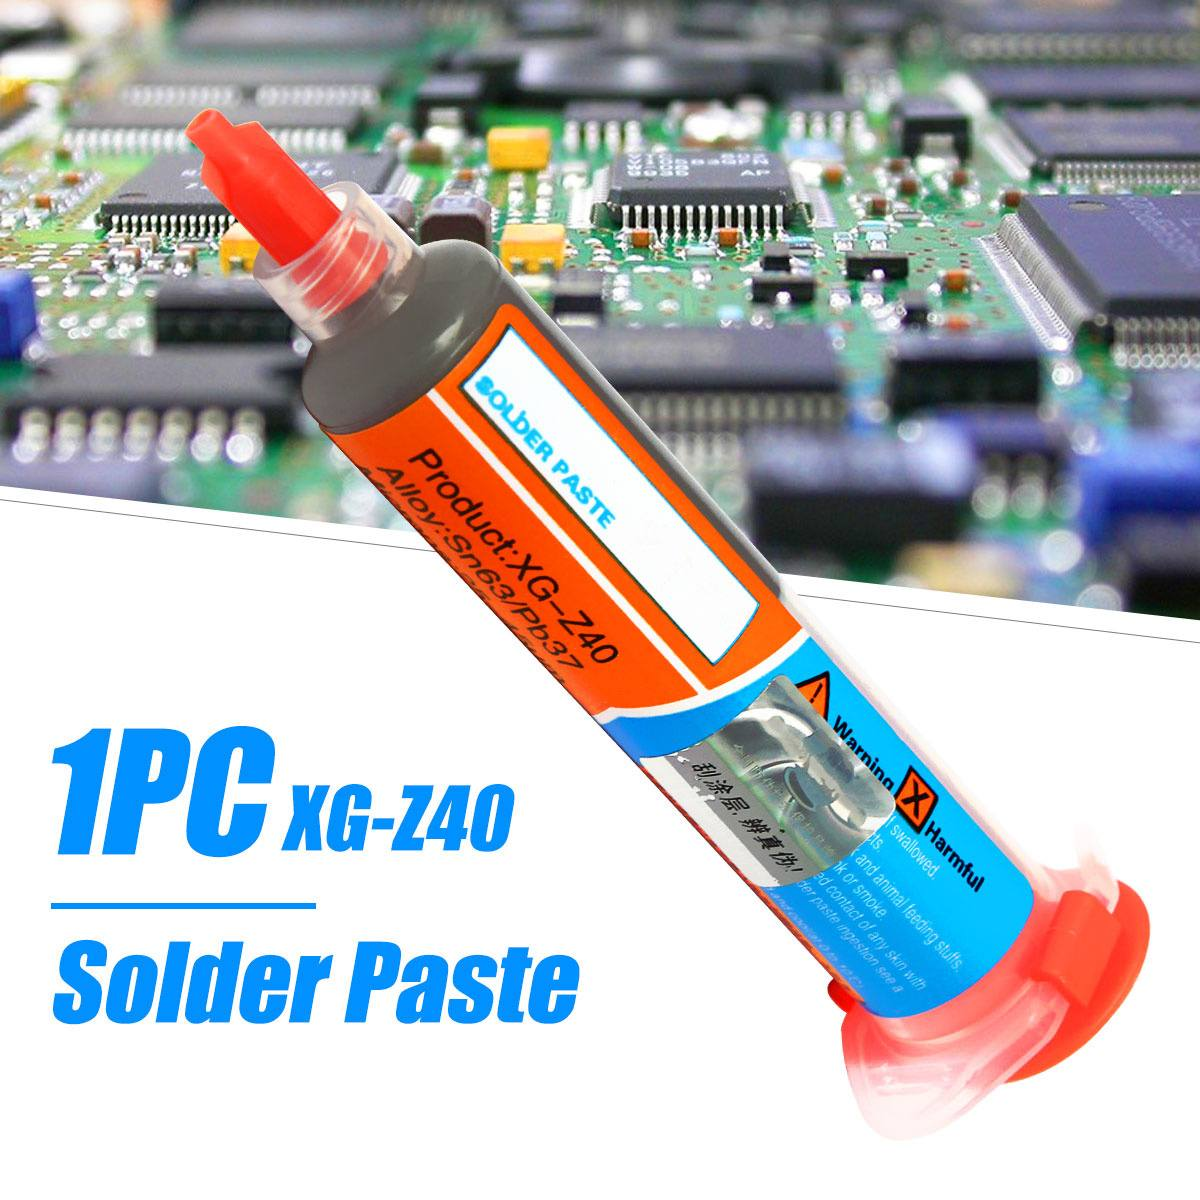 1pc 10cc Needle Shaped Xg-z40 Solder Paste Flux Sn63/Pb37 25-45um Syringe To Mobile Phone Repair Computer Services Industry